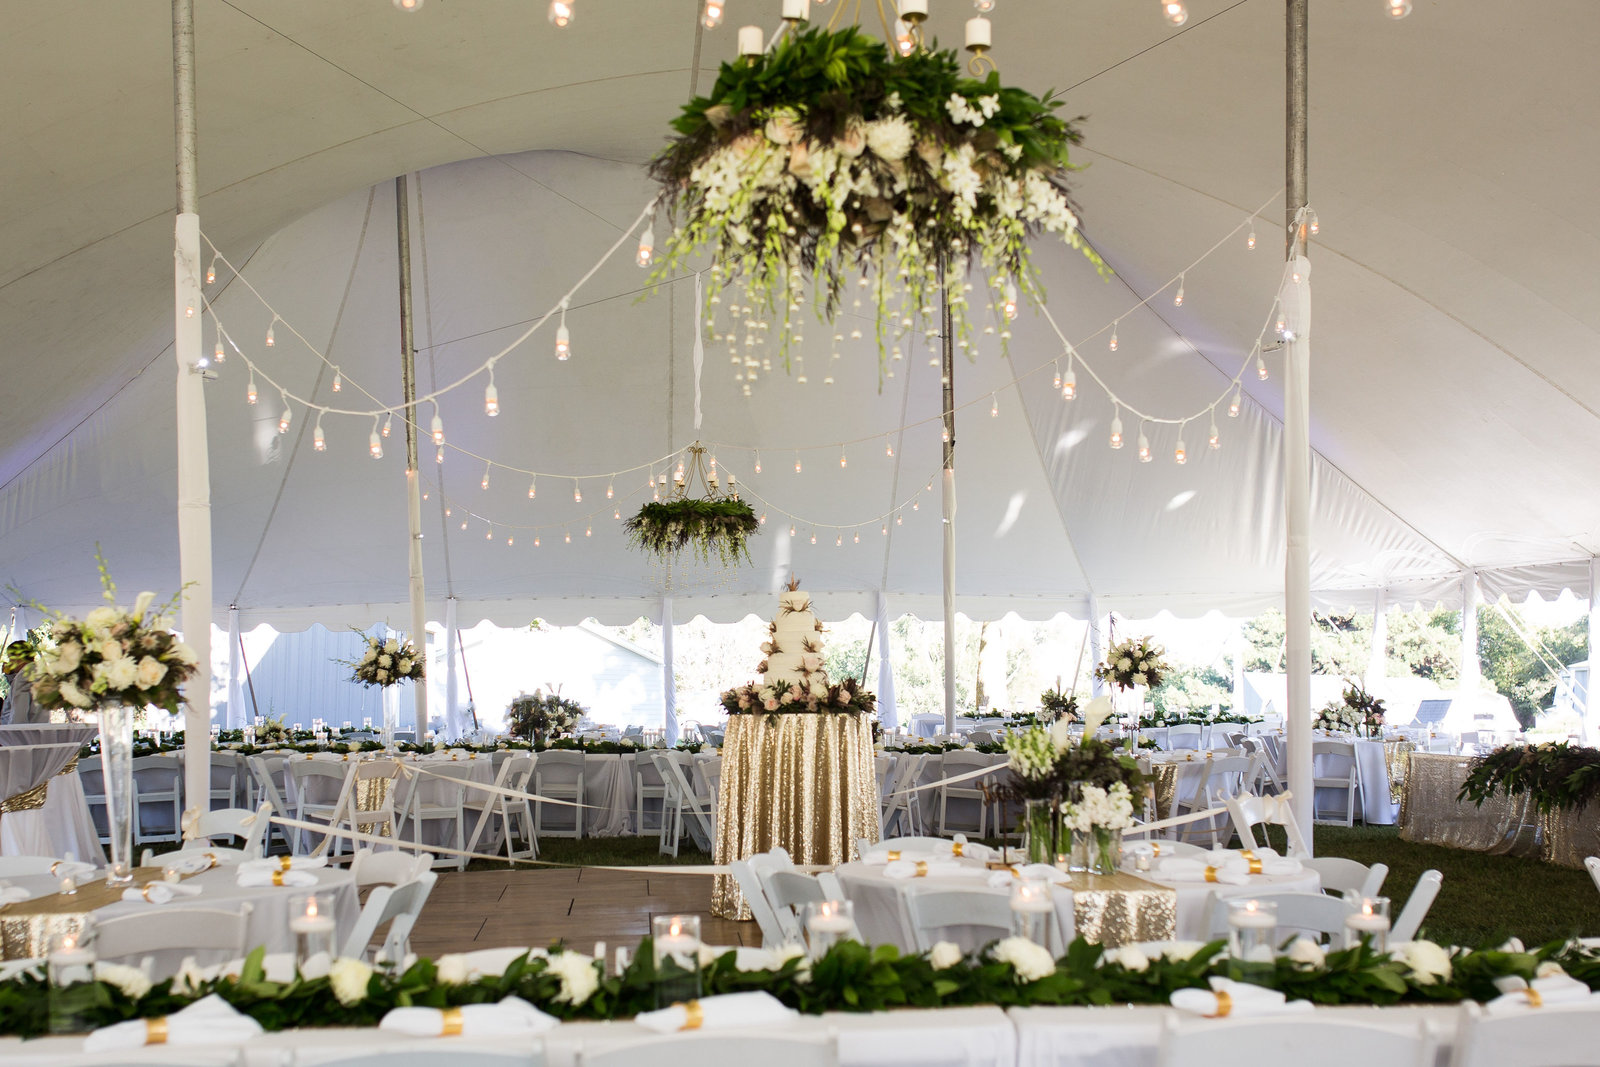 Kansas' Top Rated Local® Event Planners Award Winner: Along Came Abby